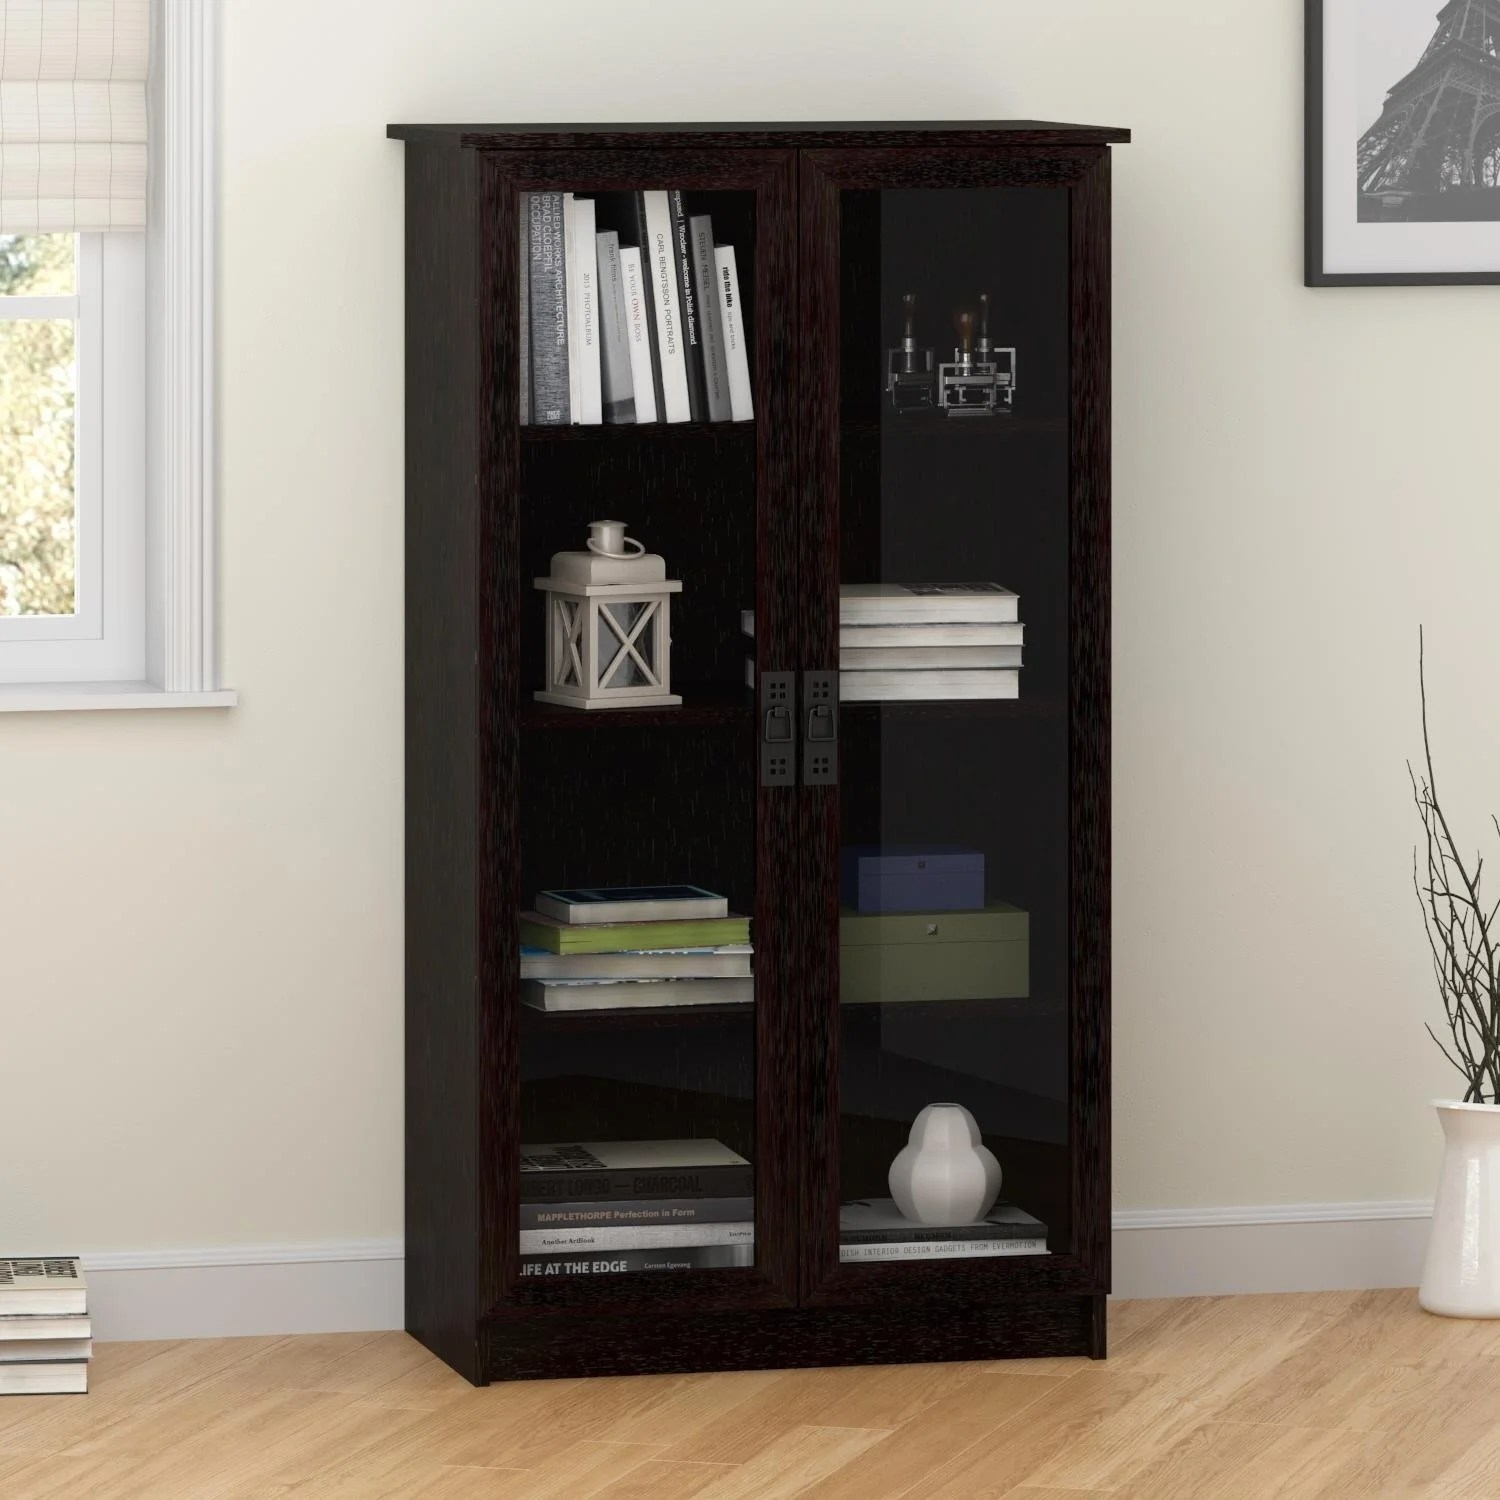 Etagere Otto Ameriwood Home Quinton Point Espresso Bookcase With Glass Doors N A